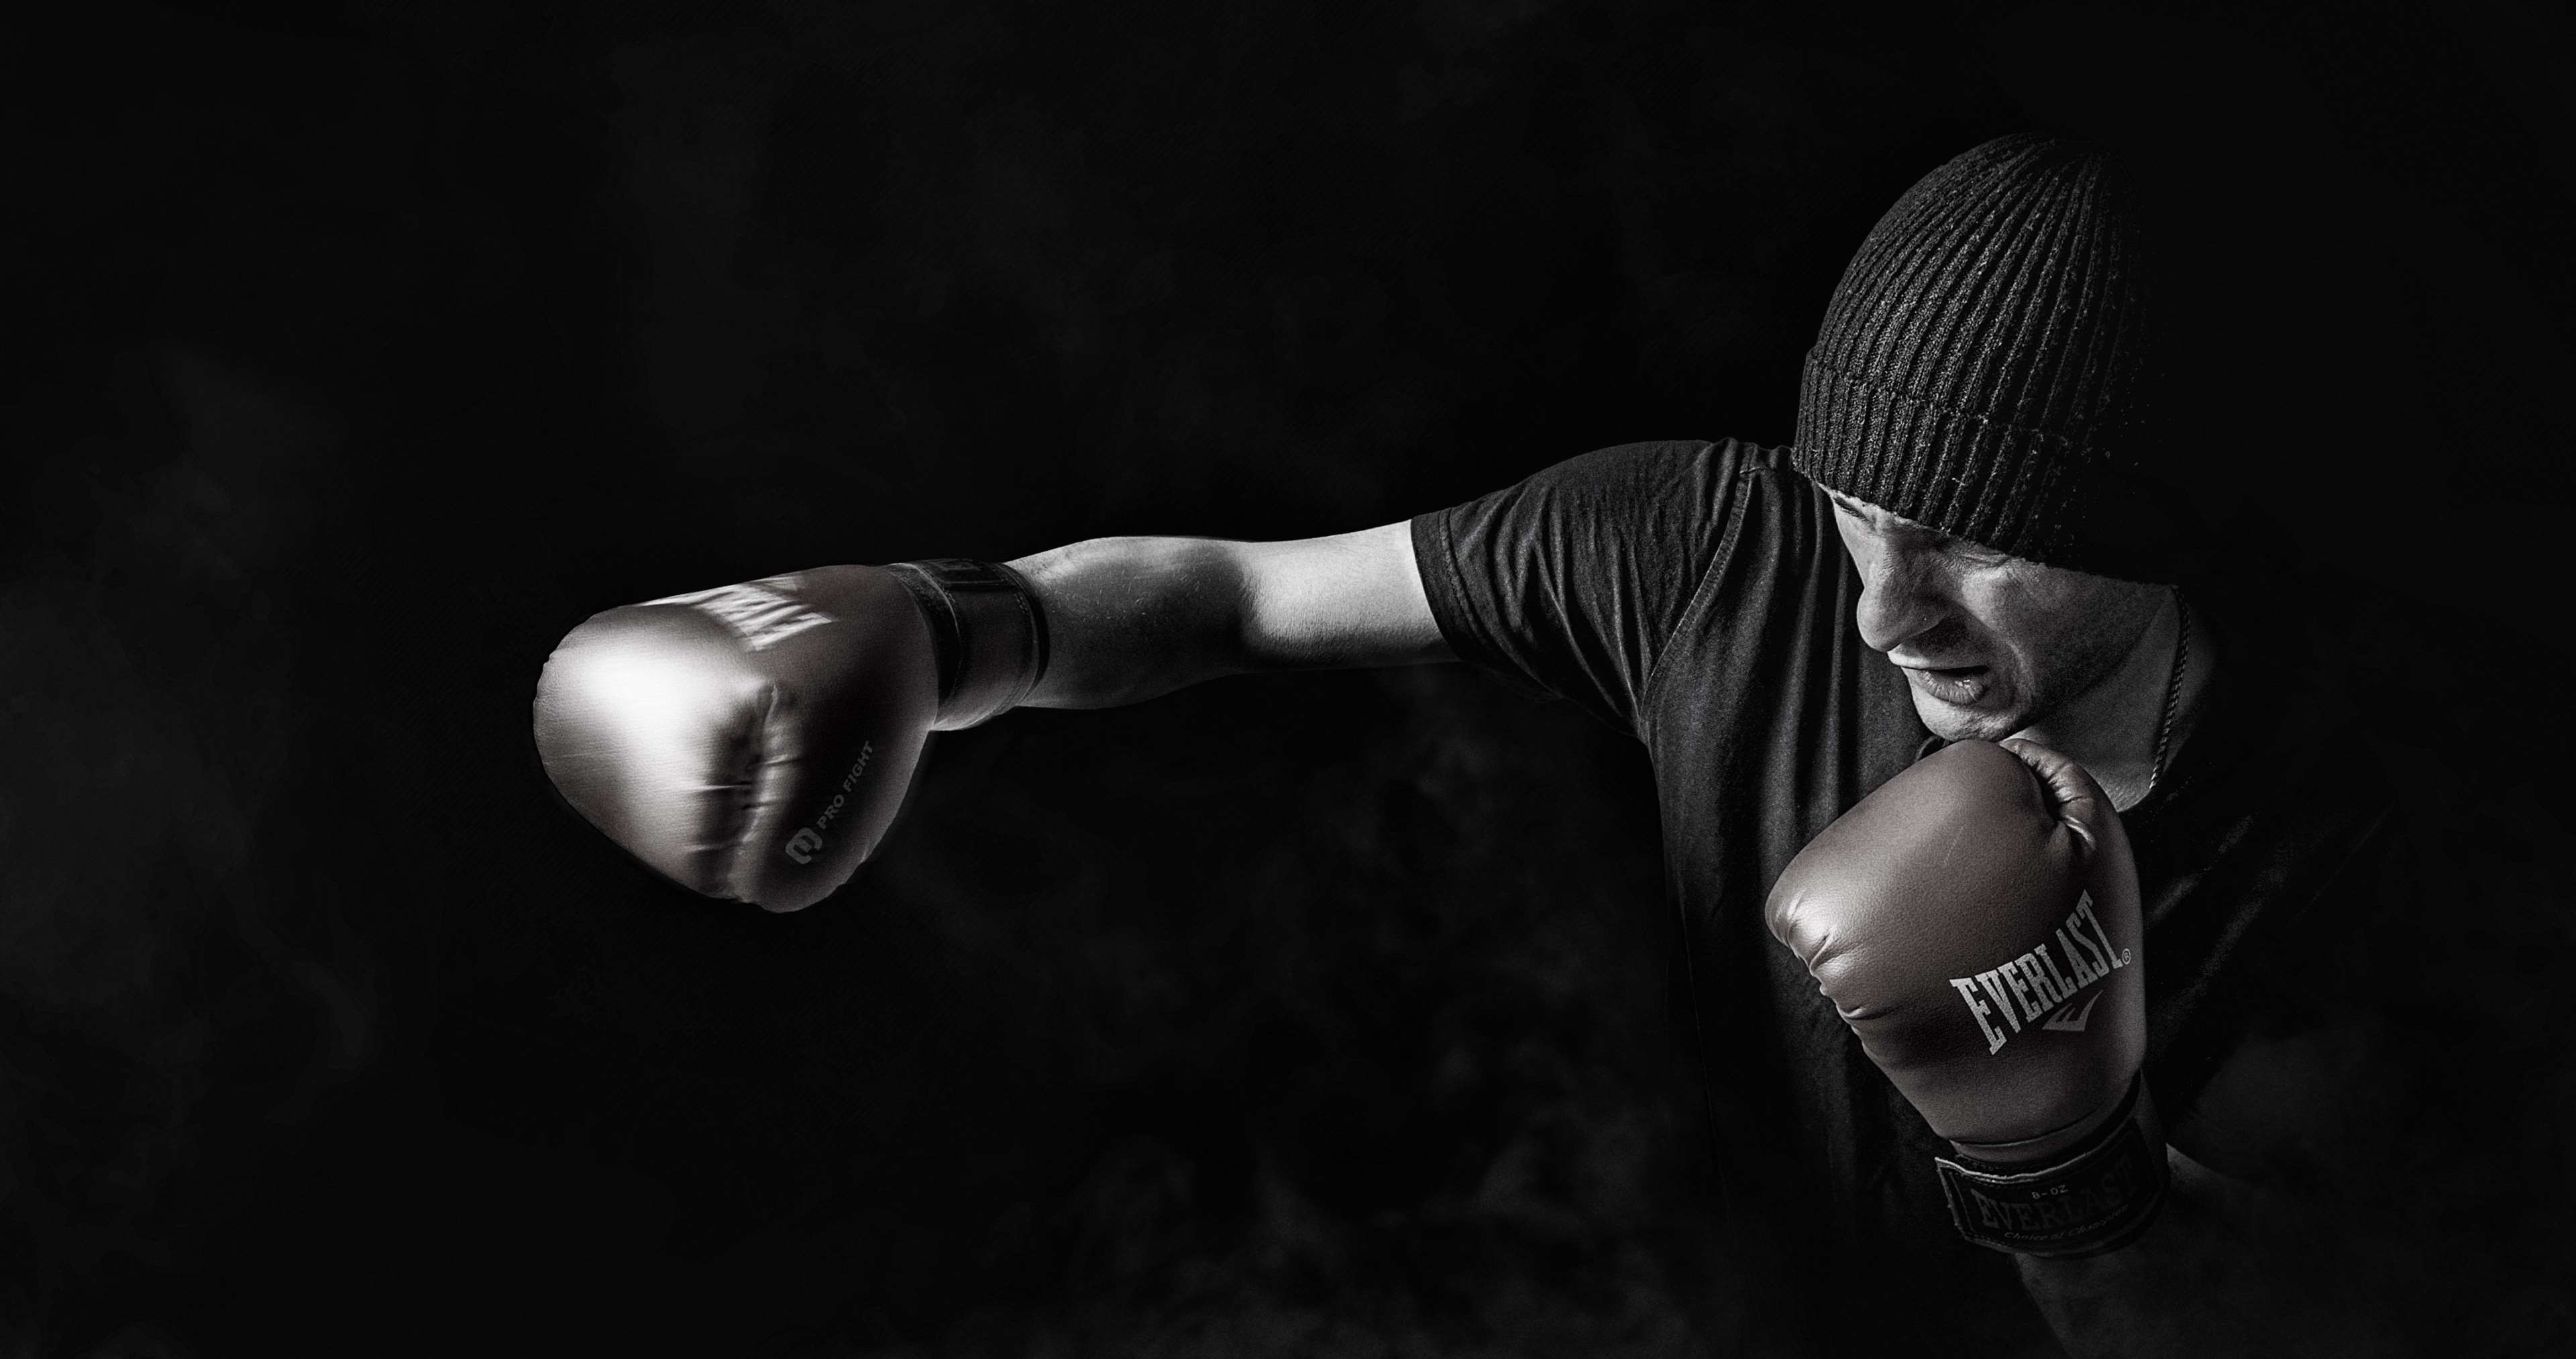 Res: 3840x2026, ... bonnet, boxer, boxing, dark, fight, fighter, force, gloves, male, man,  person, power, smoke, sport, strength, training 4k wallpaper and background